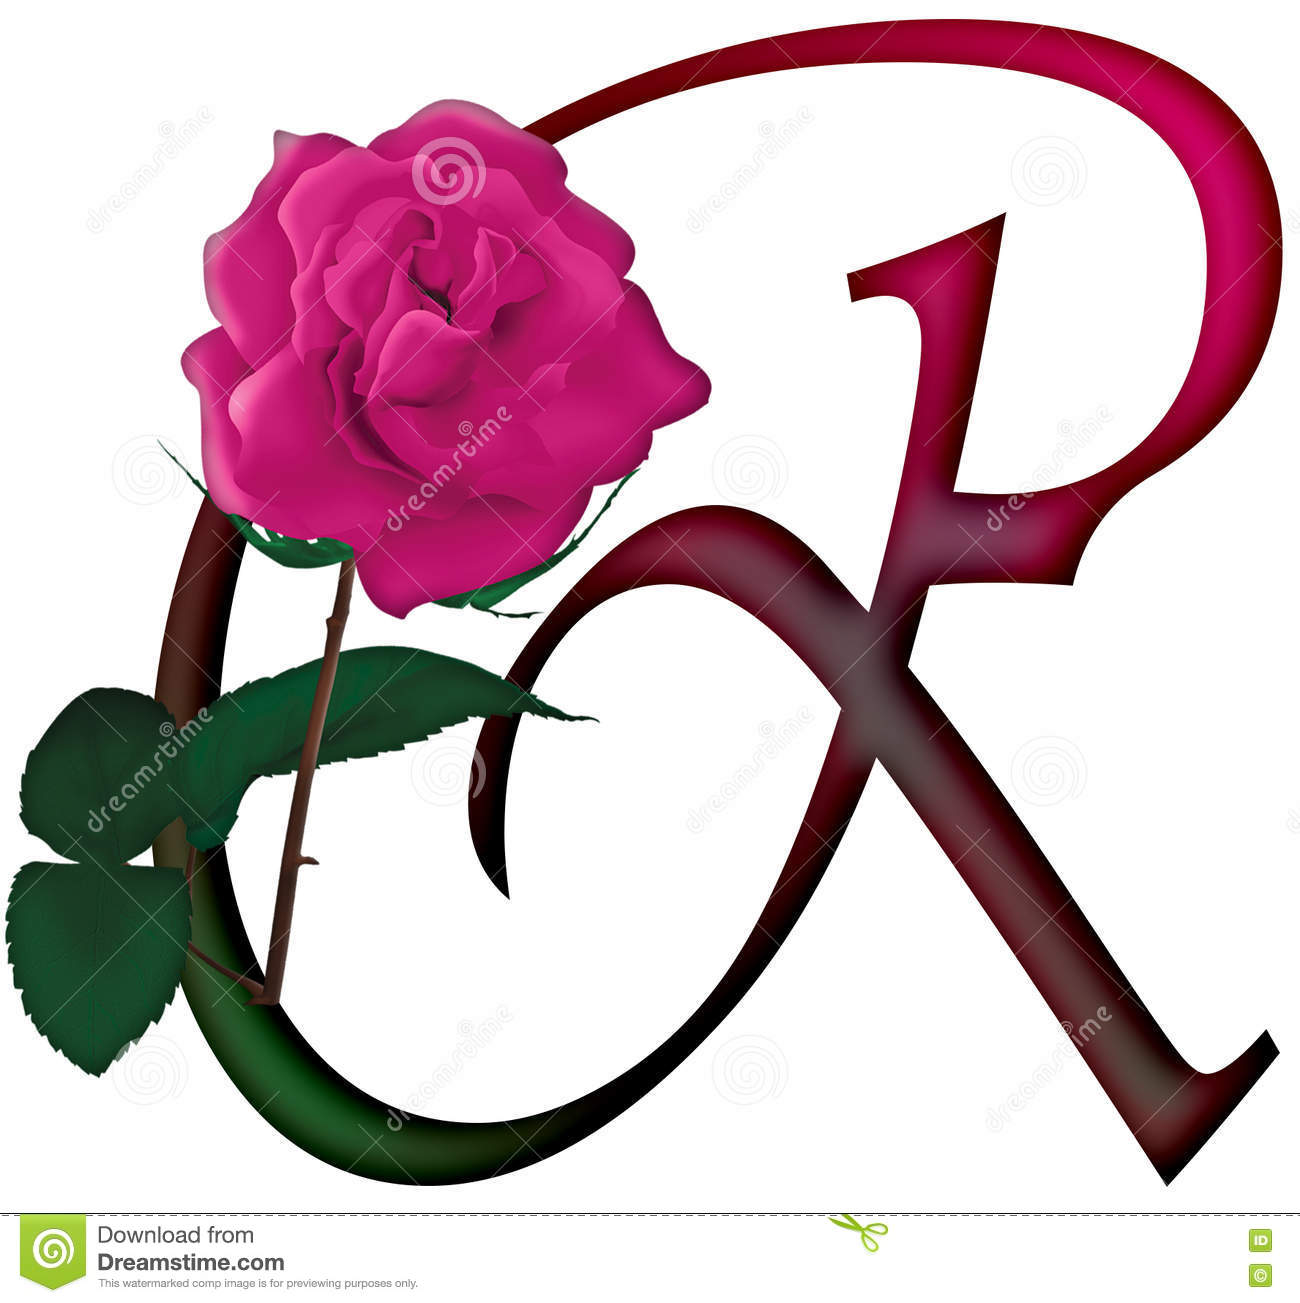 Letter R Floral Font Stock Photo Illustration Of Calligraphy 78539214